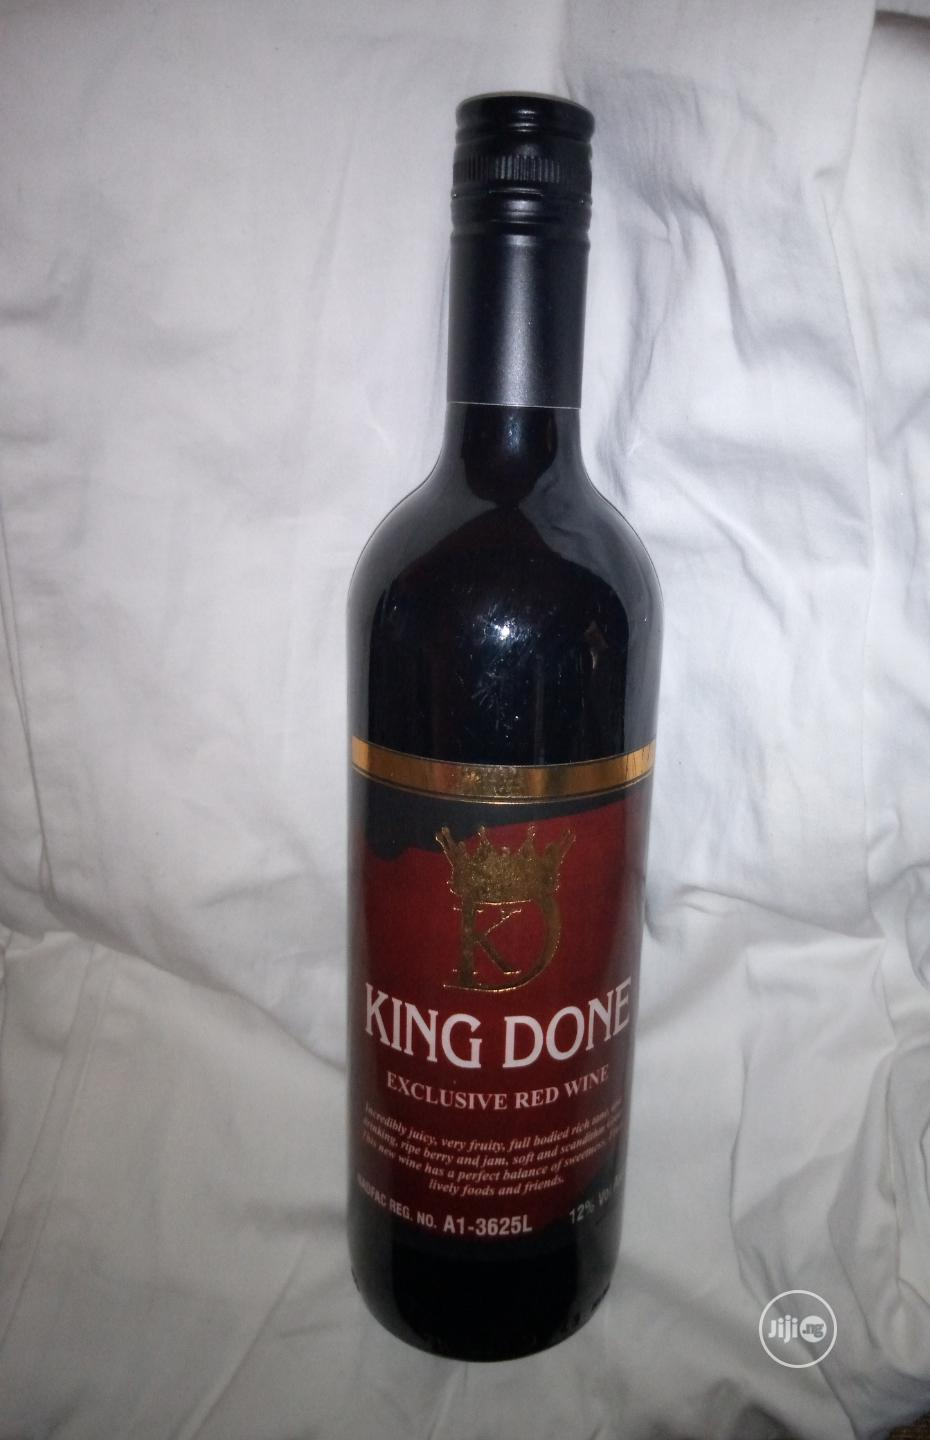 Archive: Red Wine(Kingdone Exclusive Red Wine)